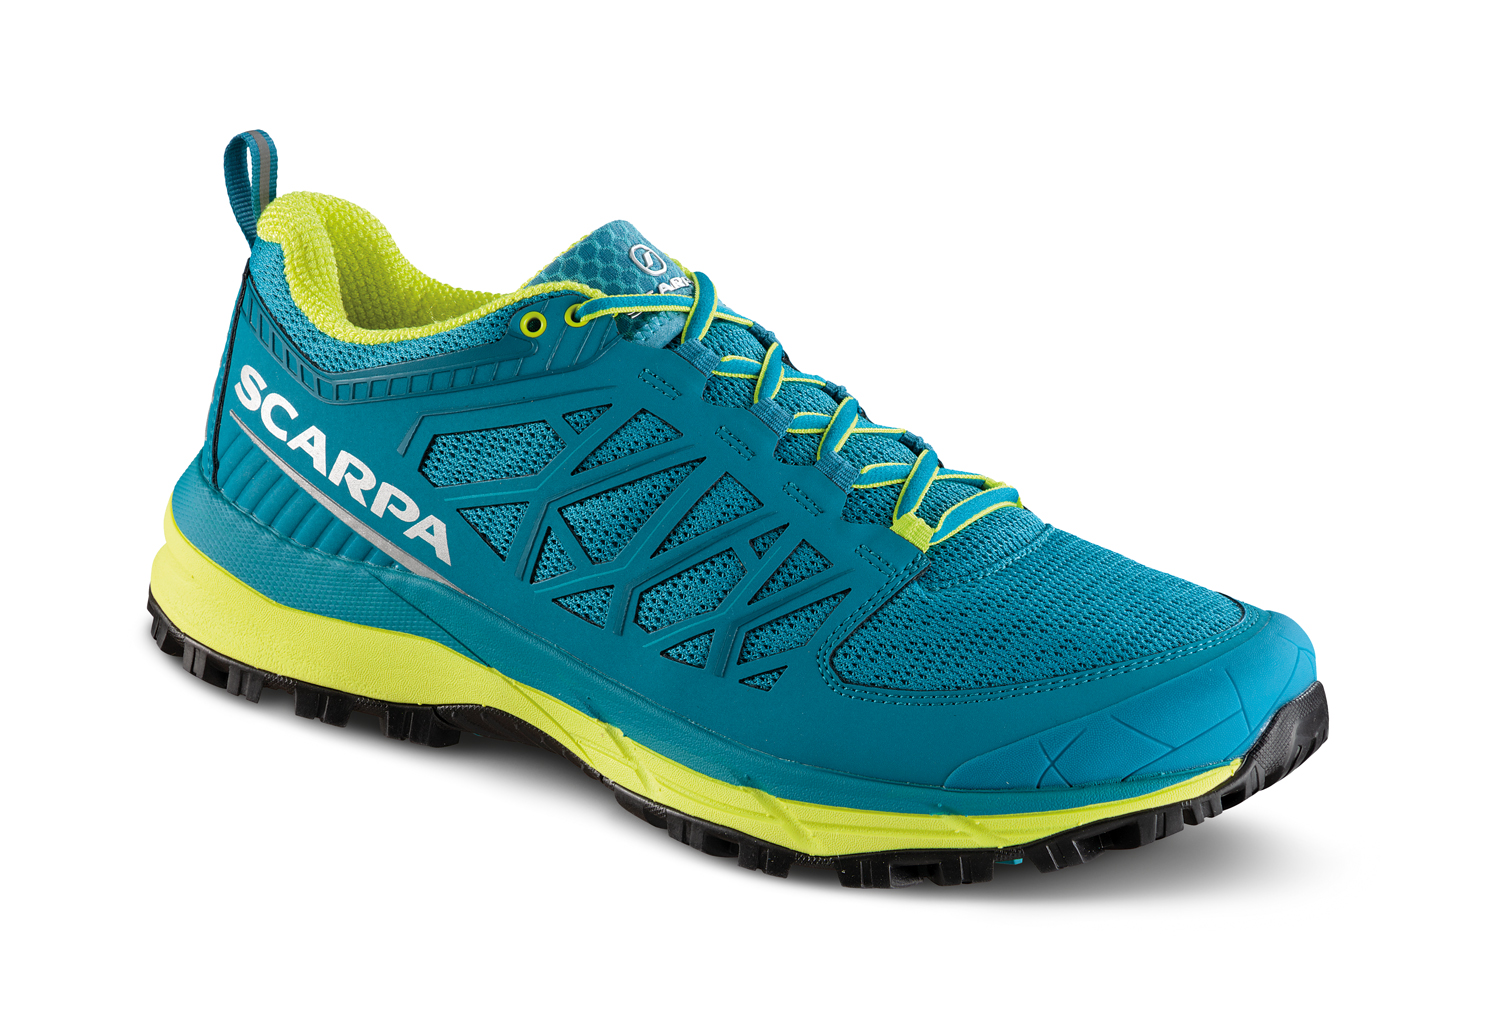 super popular 111bb 0d4a5 Scarpa Proton XT Trail Running Shoes Summer 2019 for € 78.99